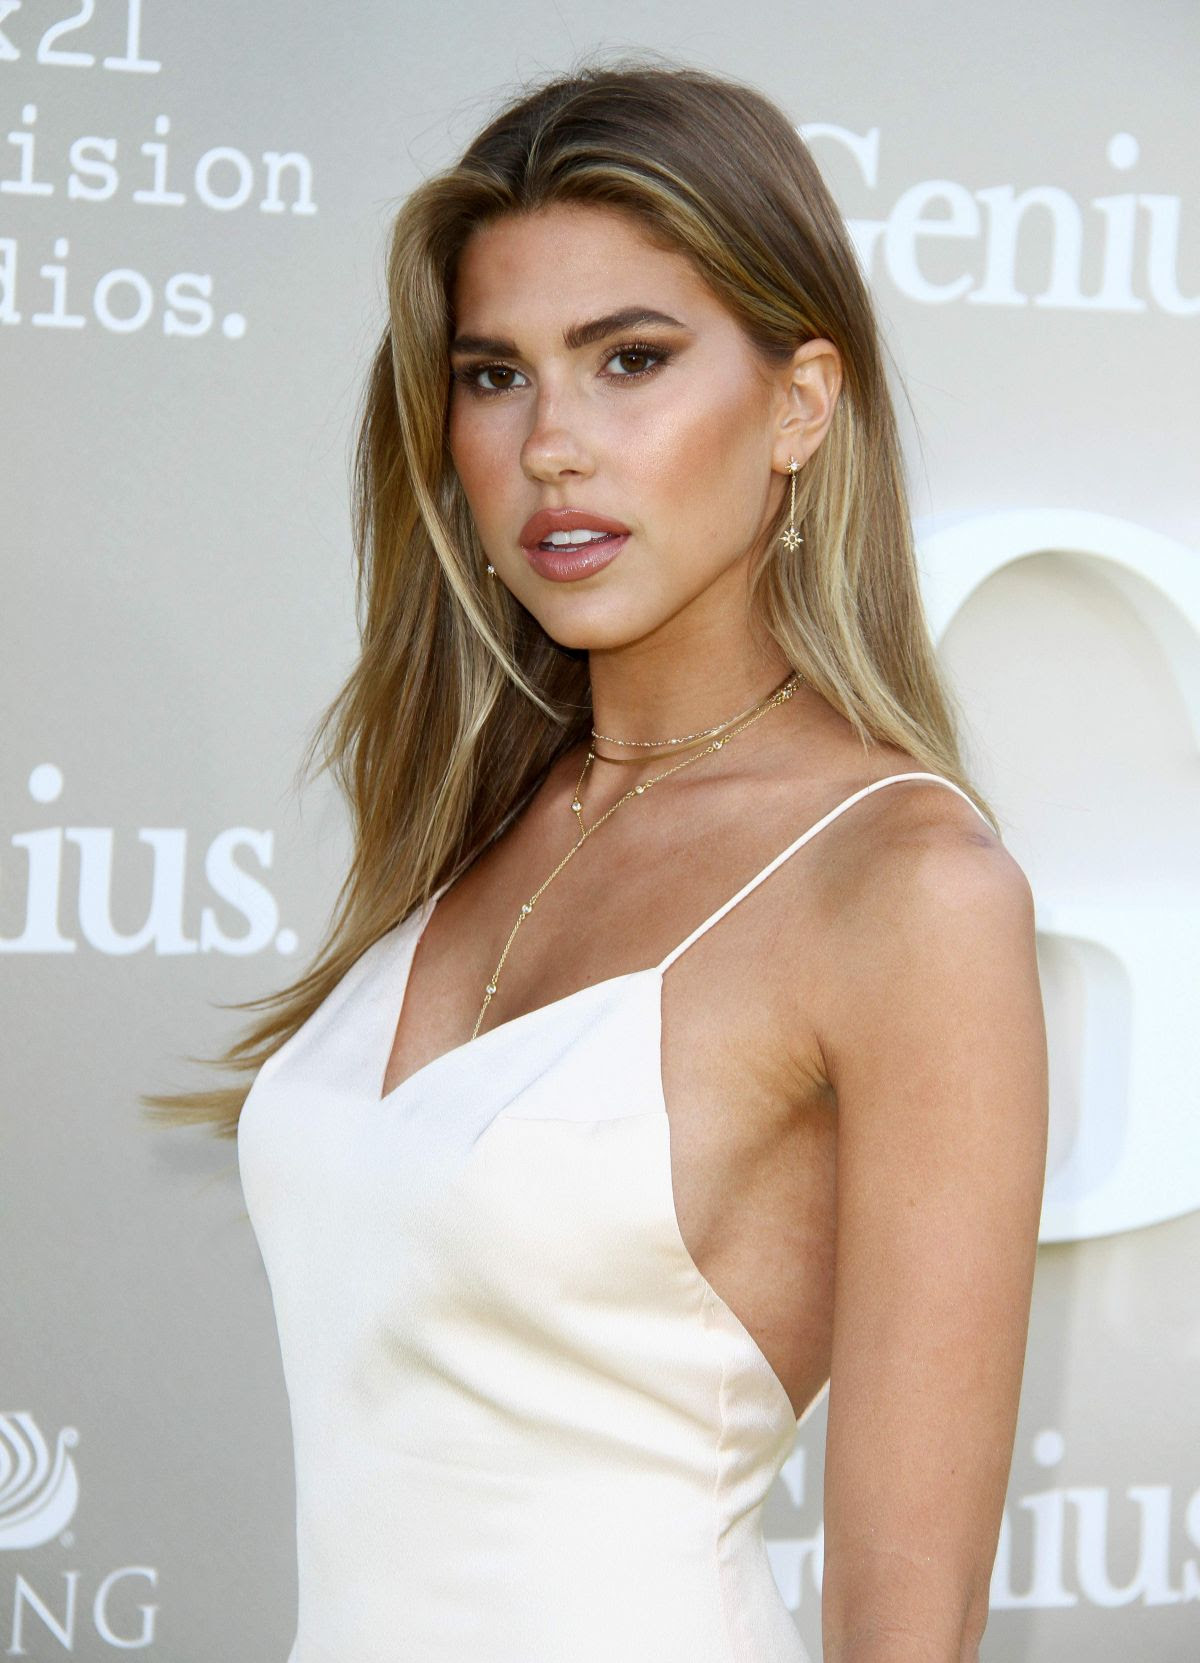 KARA DEL TORO at National Geographic's Genius Premiere in Los Angeles 04/24/2017